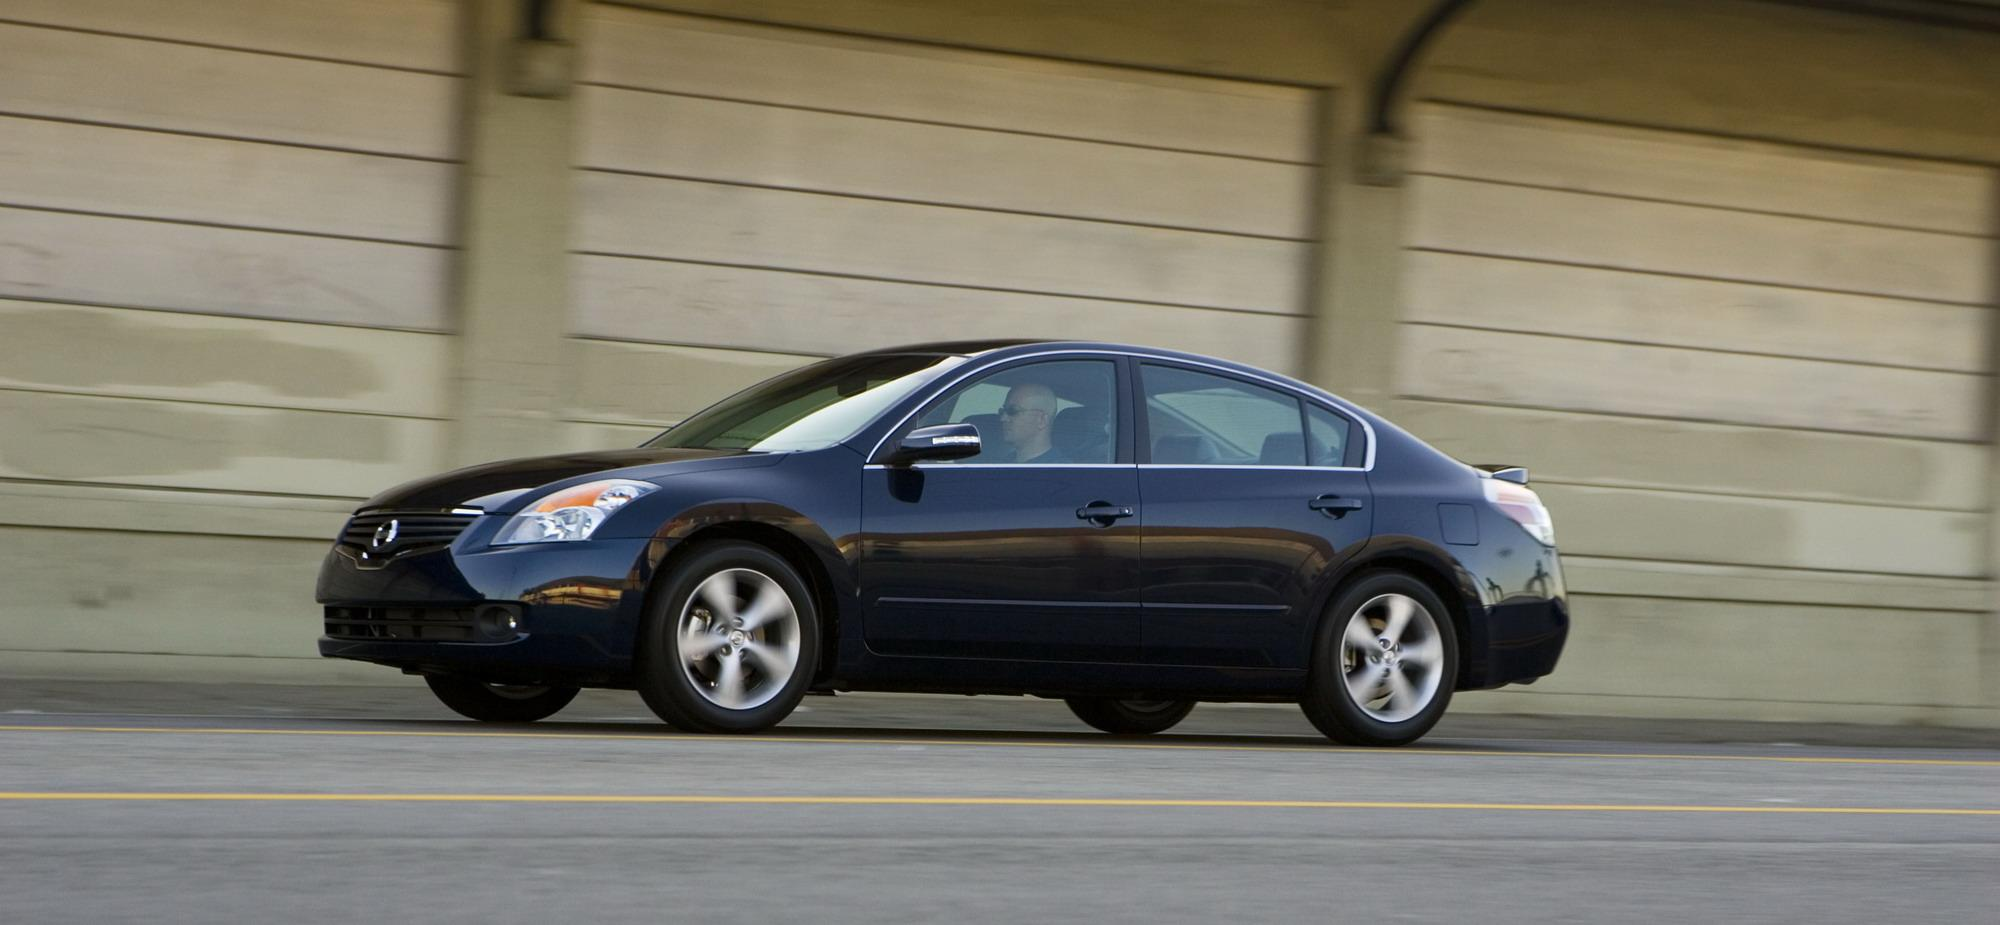 2009 nissan altima review - top speed